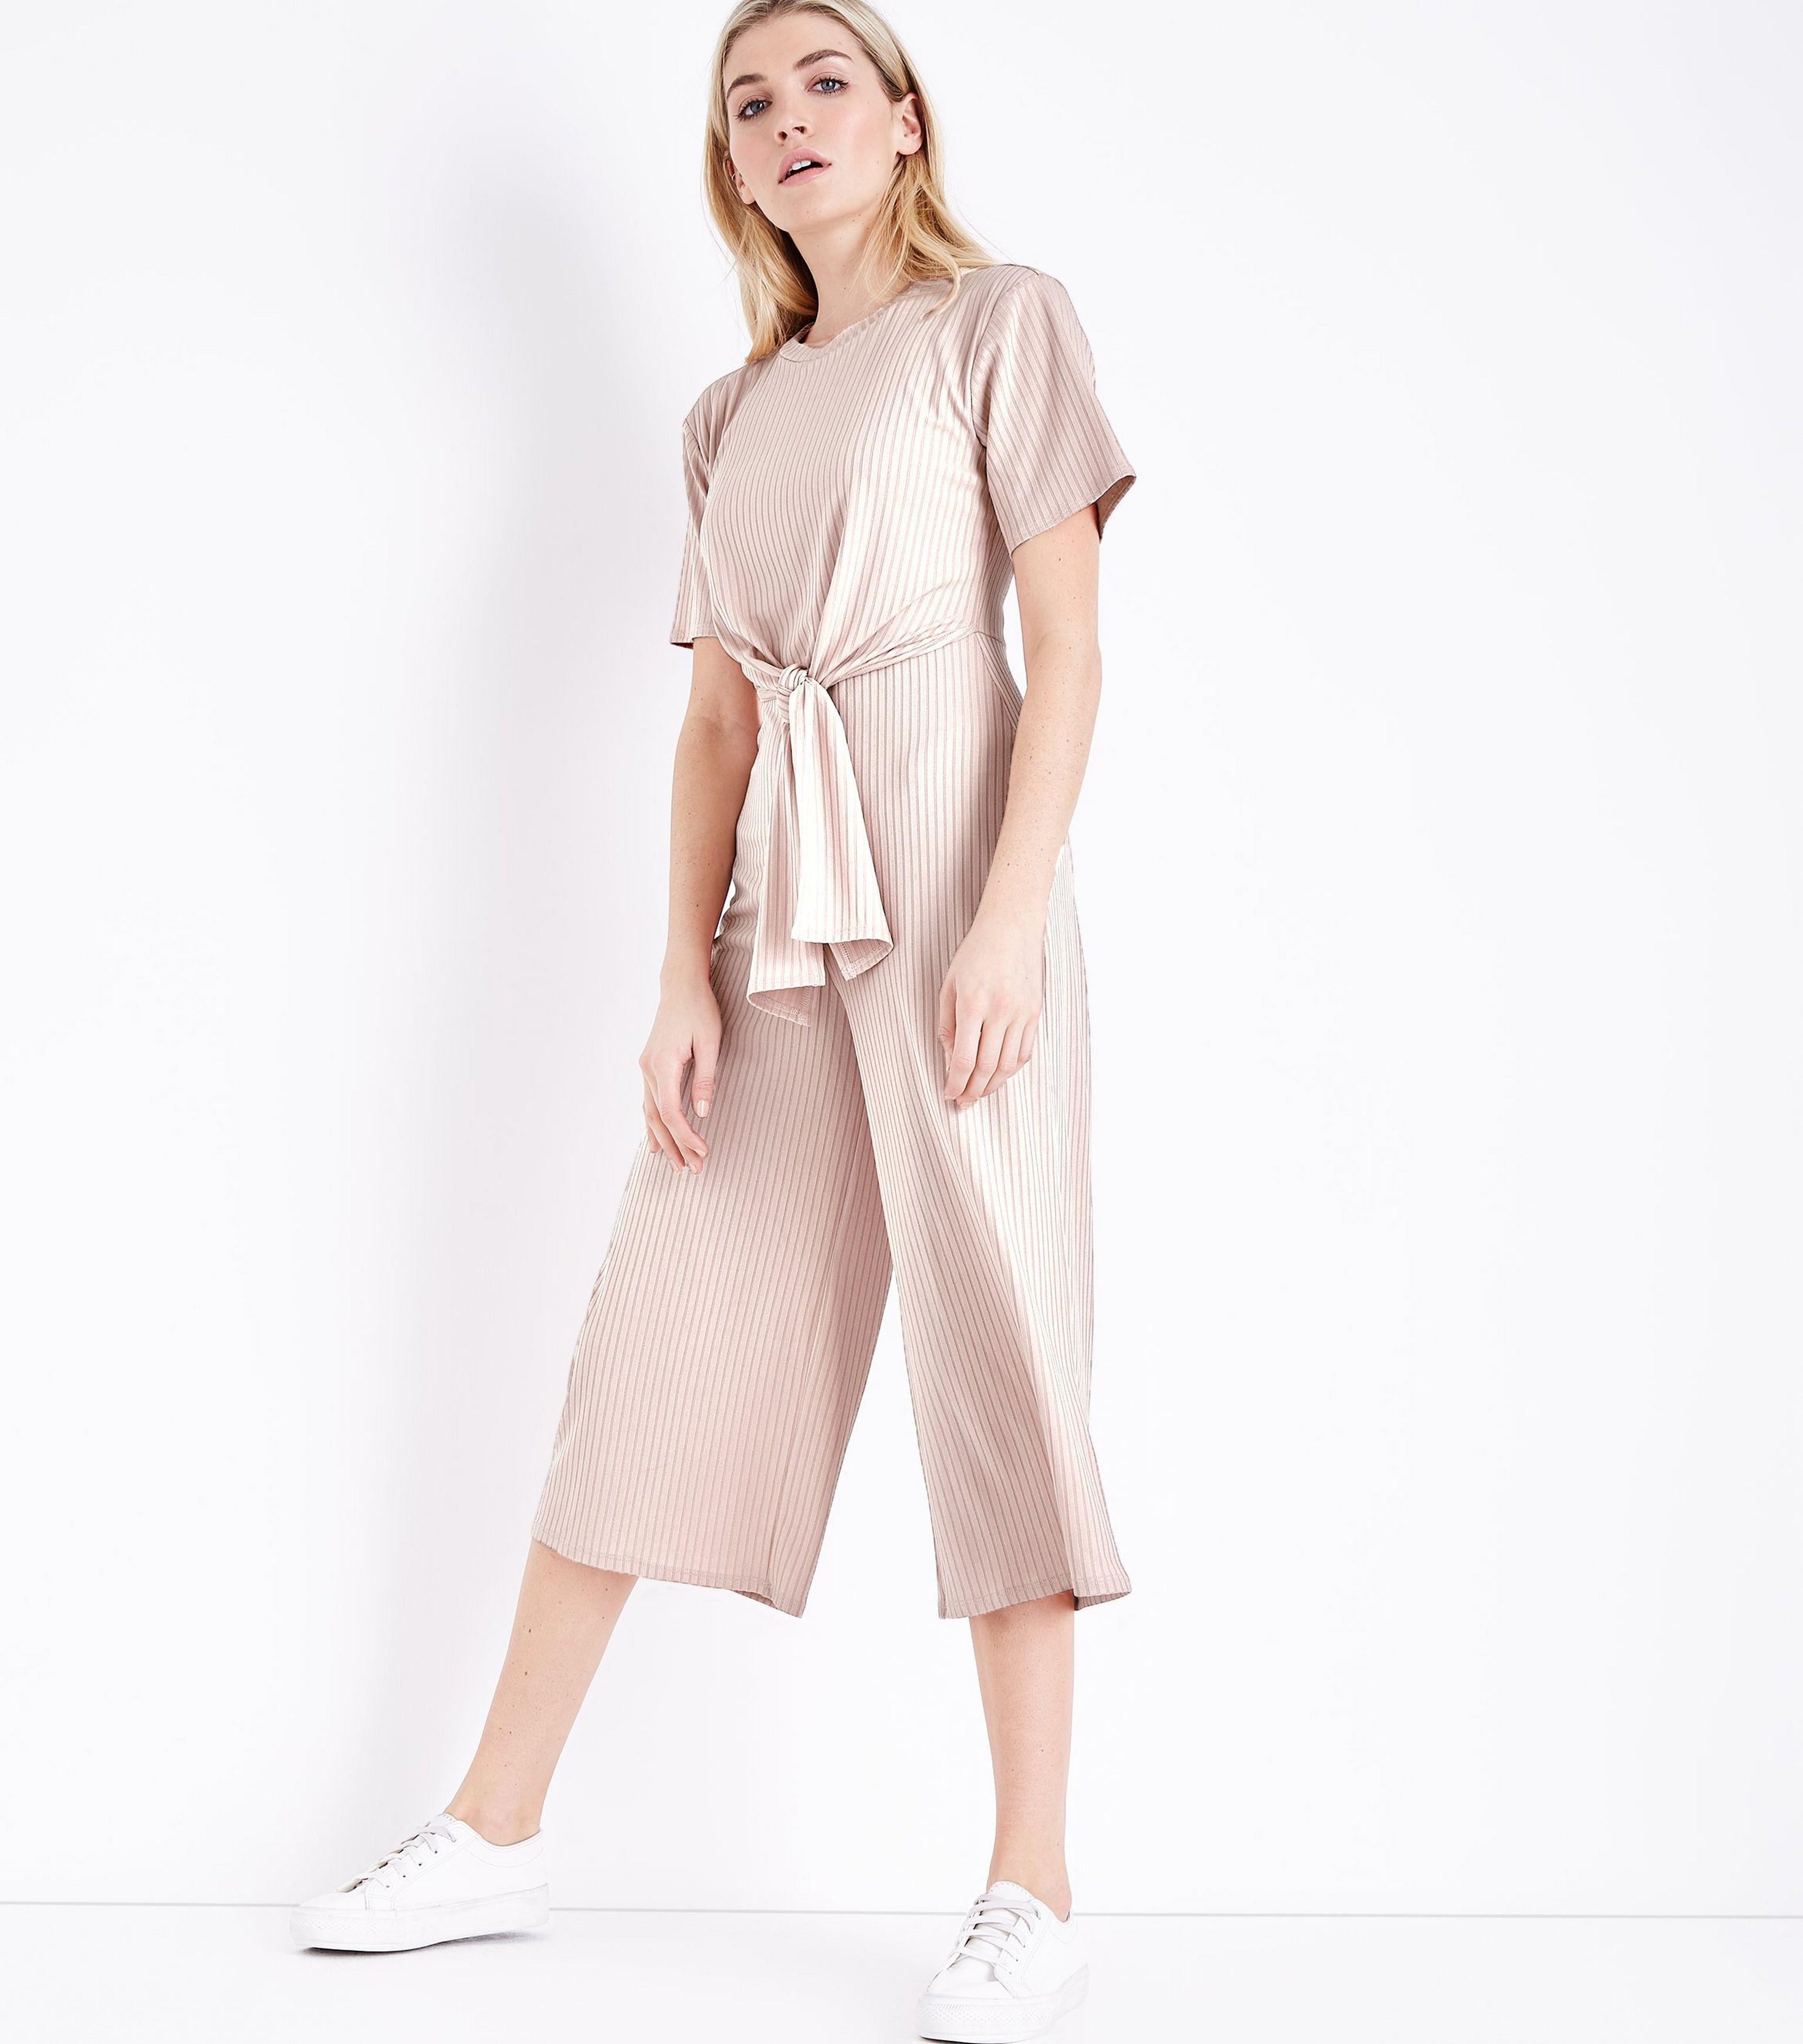 cd0406482cc9 New Look Pale Pink Ribbed Tie Front Jumpsuit in Pink - Lyst